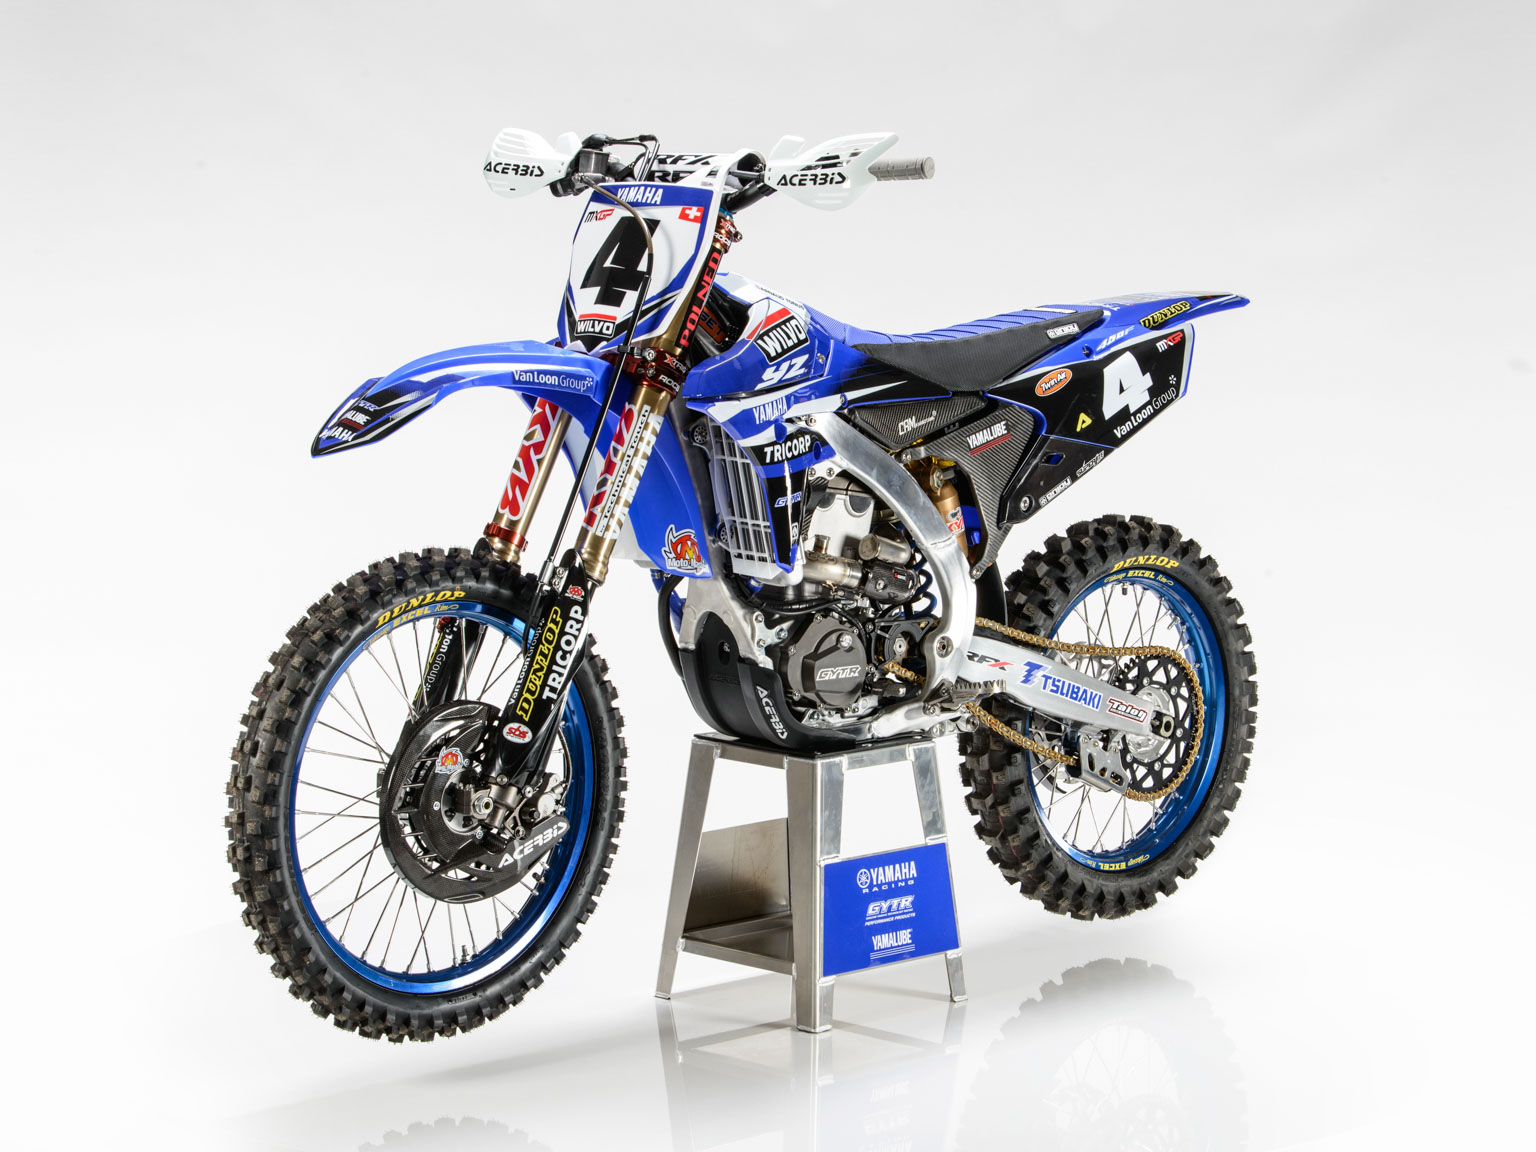 Arnaud Tonus' race bike